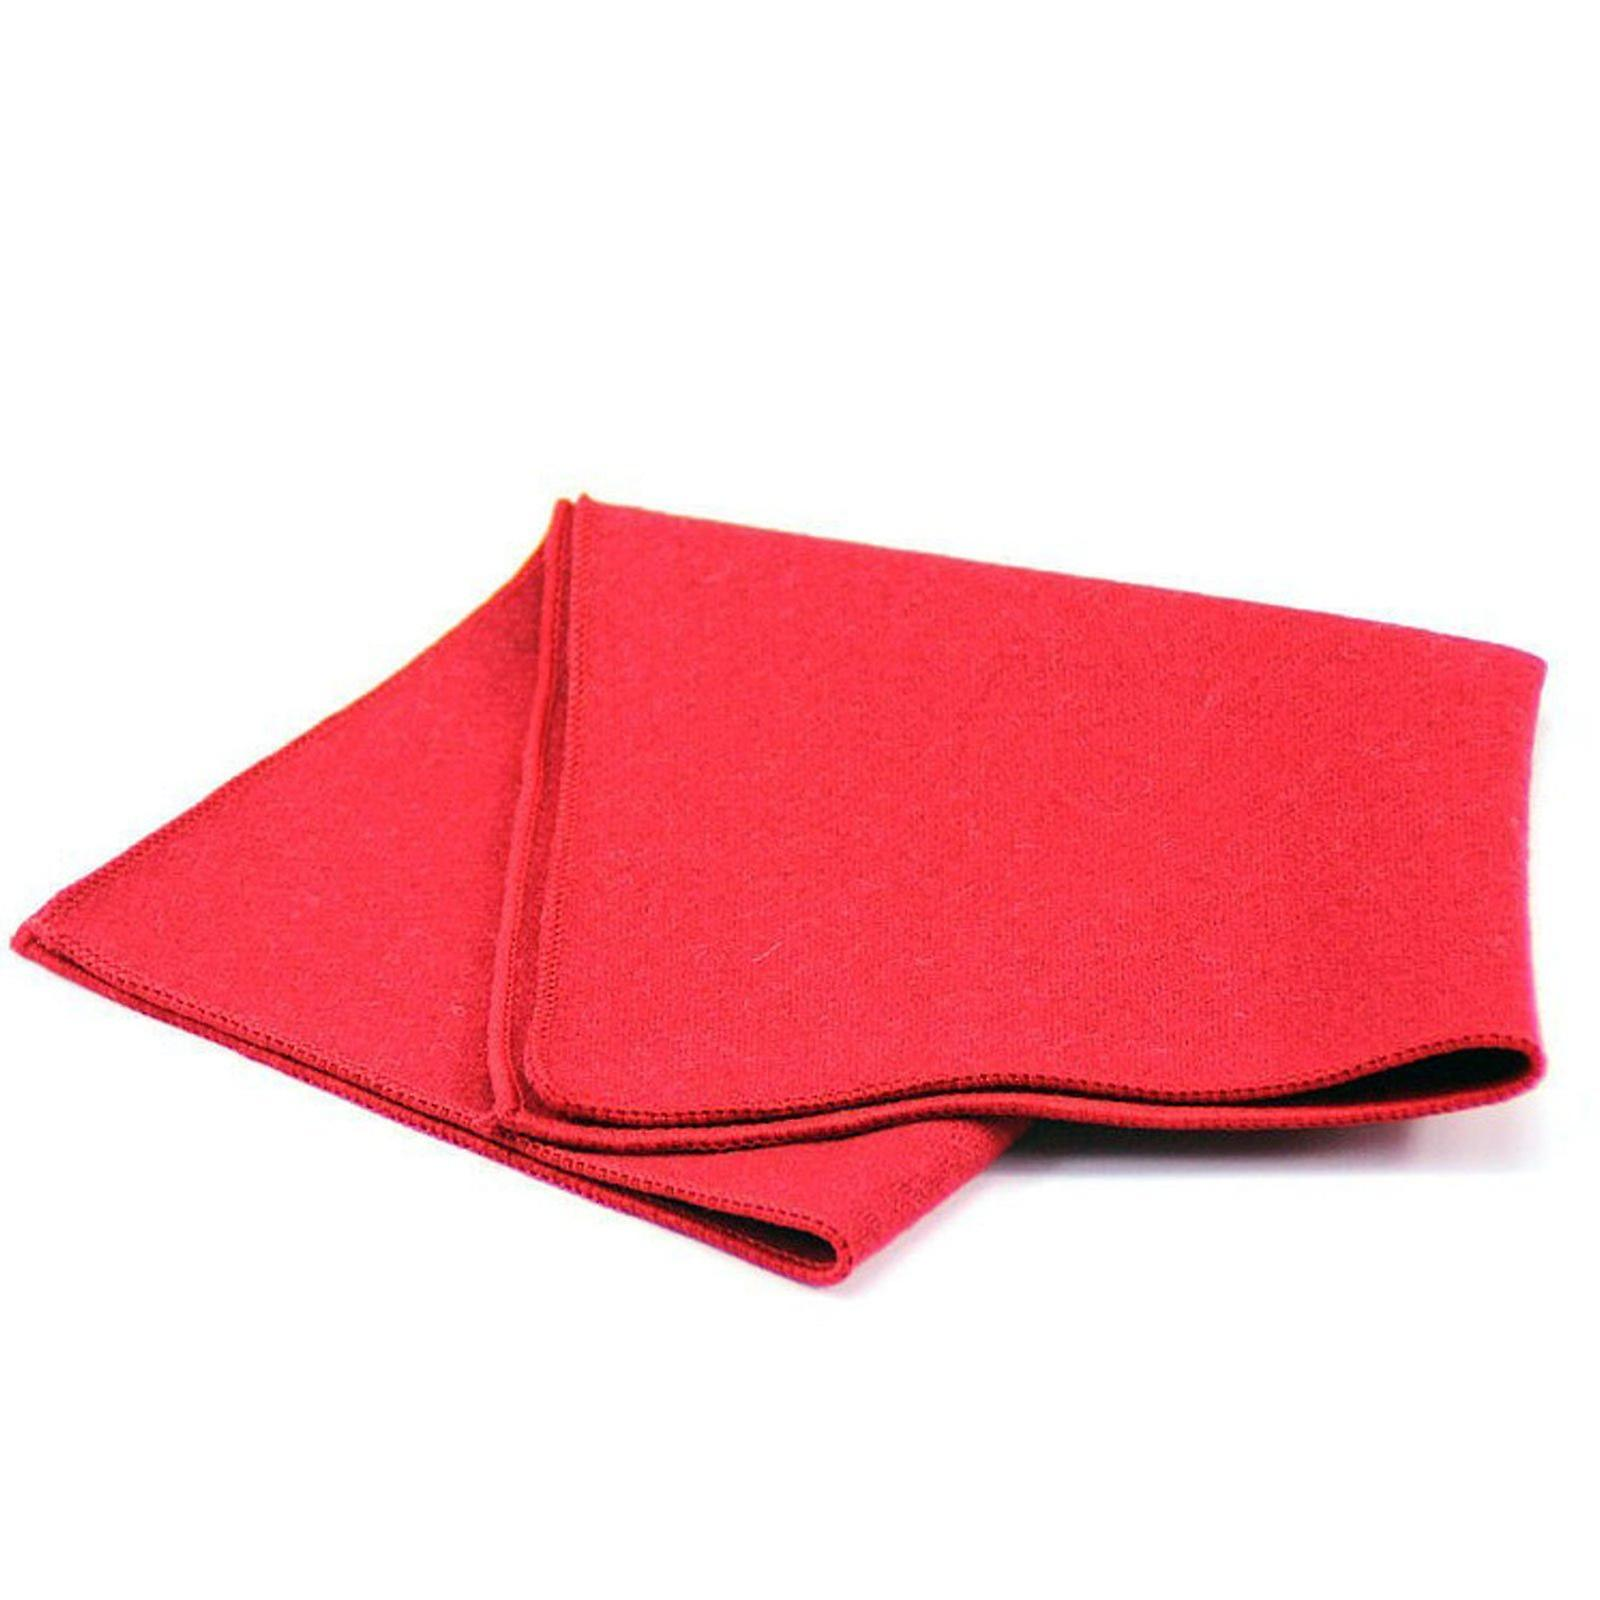 Rough texture red thick tweed wool men's pocket square